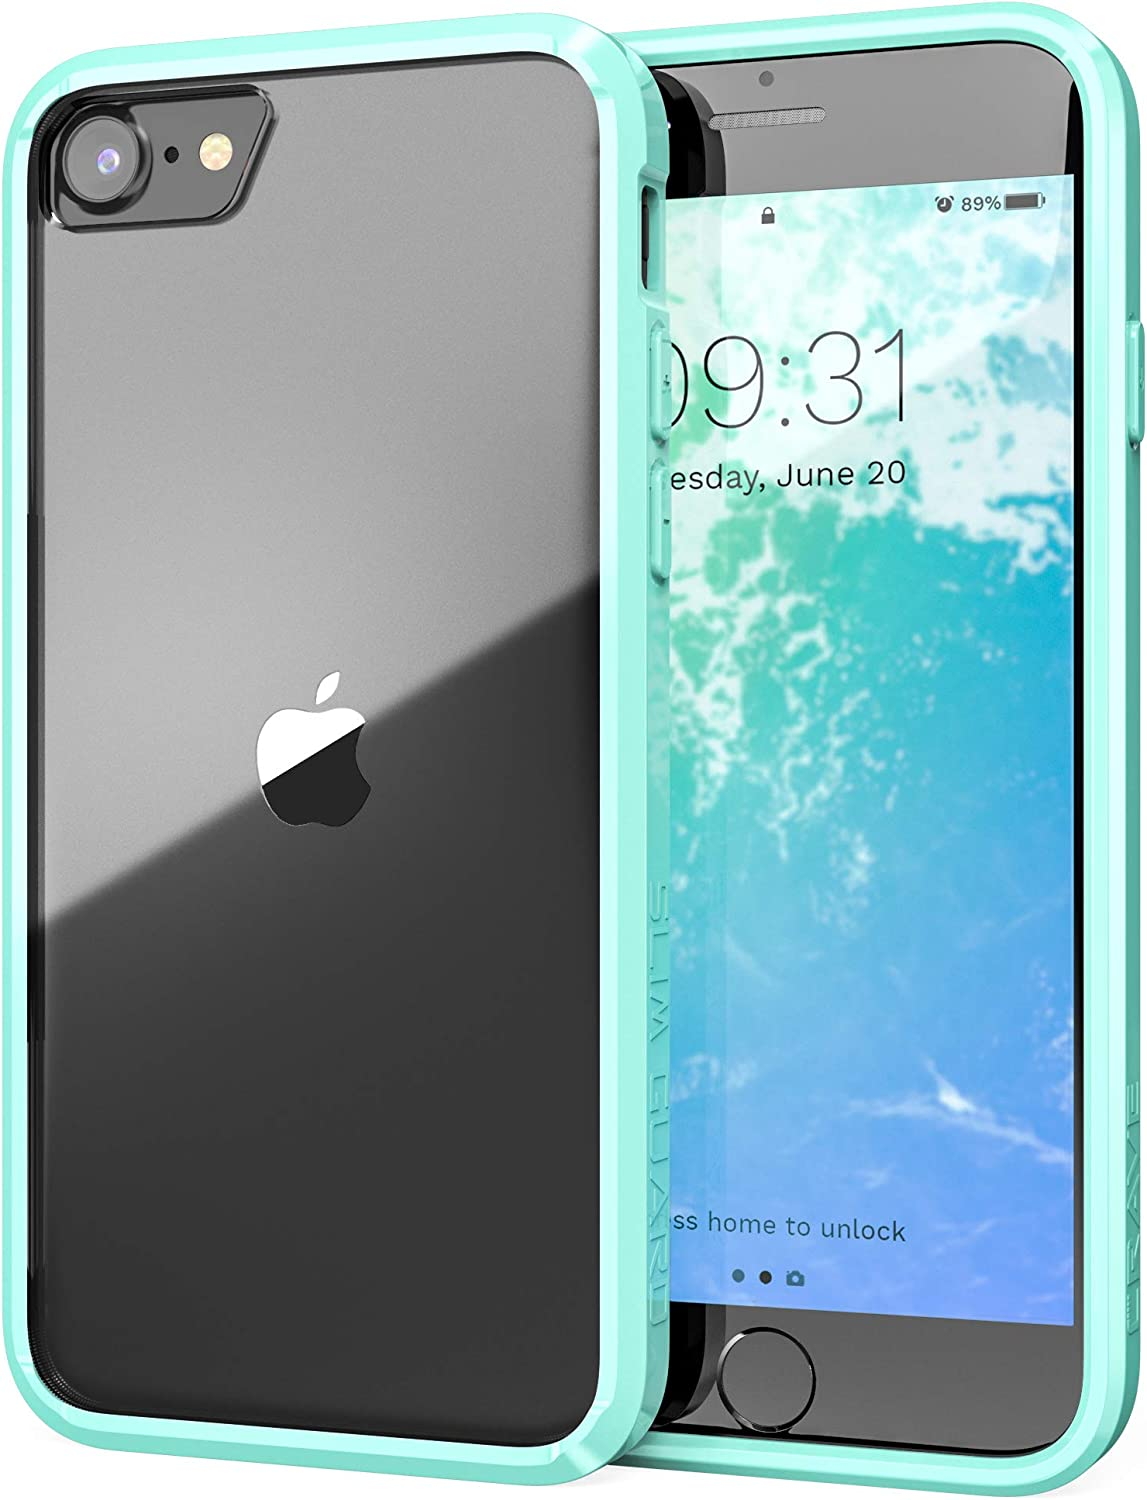 Crave iPhone SE 2020 Case, iPhone 8 Case, iPhone 7 Case, Slim Guard Protection Series Case Apple iPhone SE/8/7 (4.7 Inch) - Mint